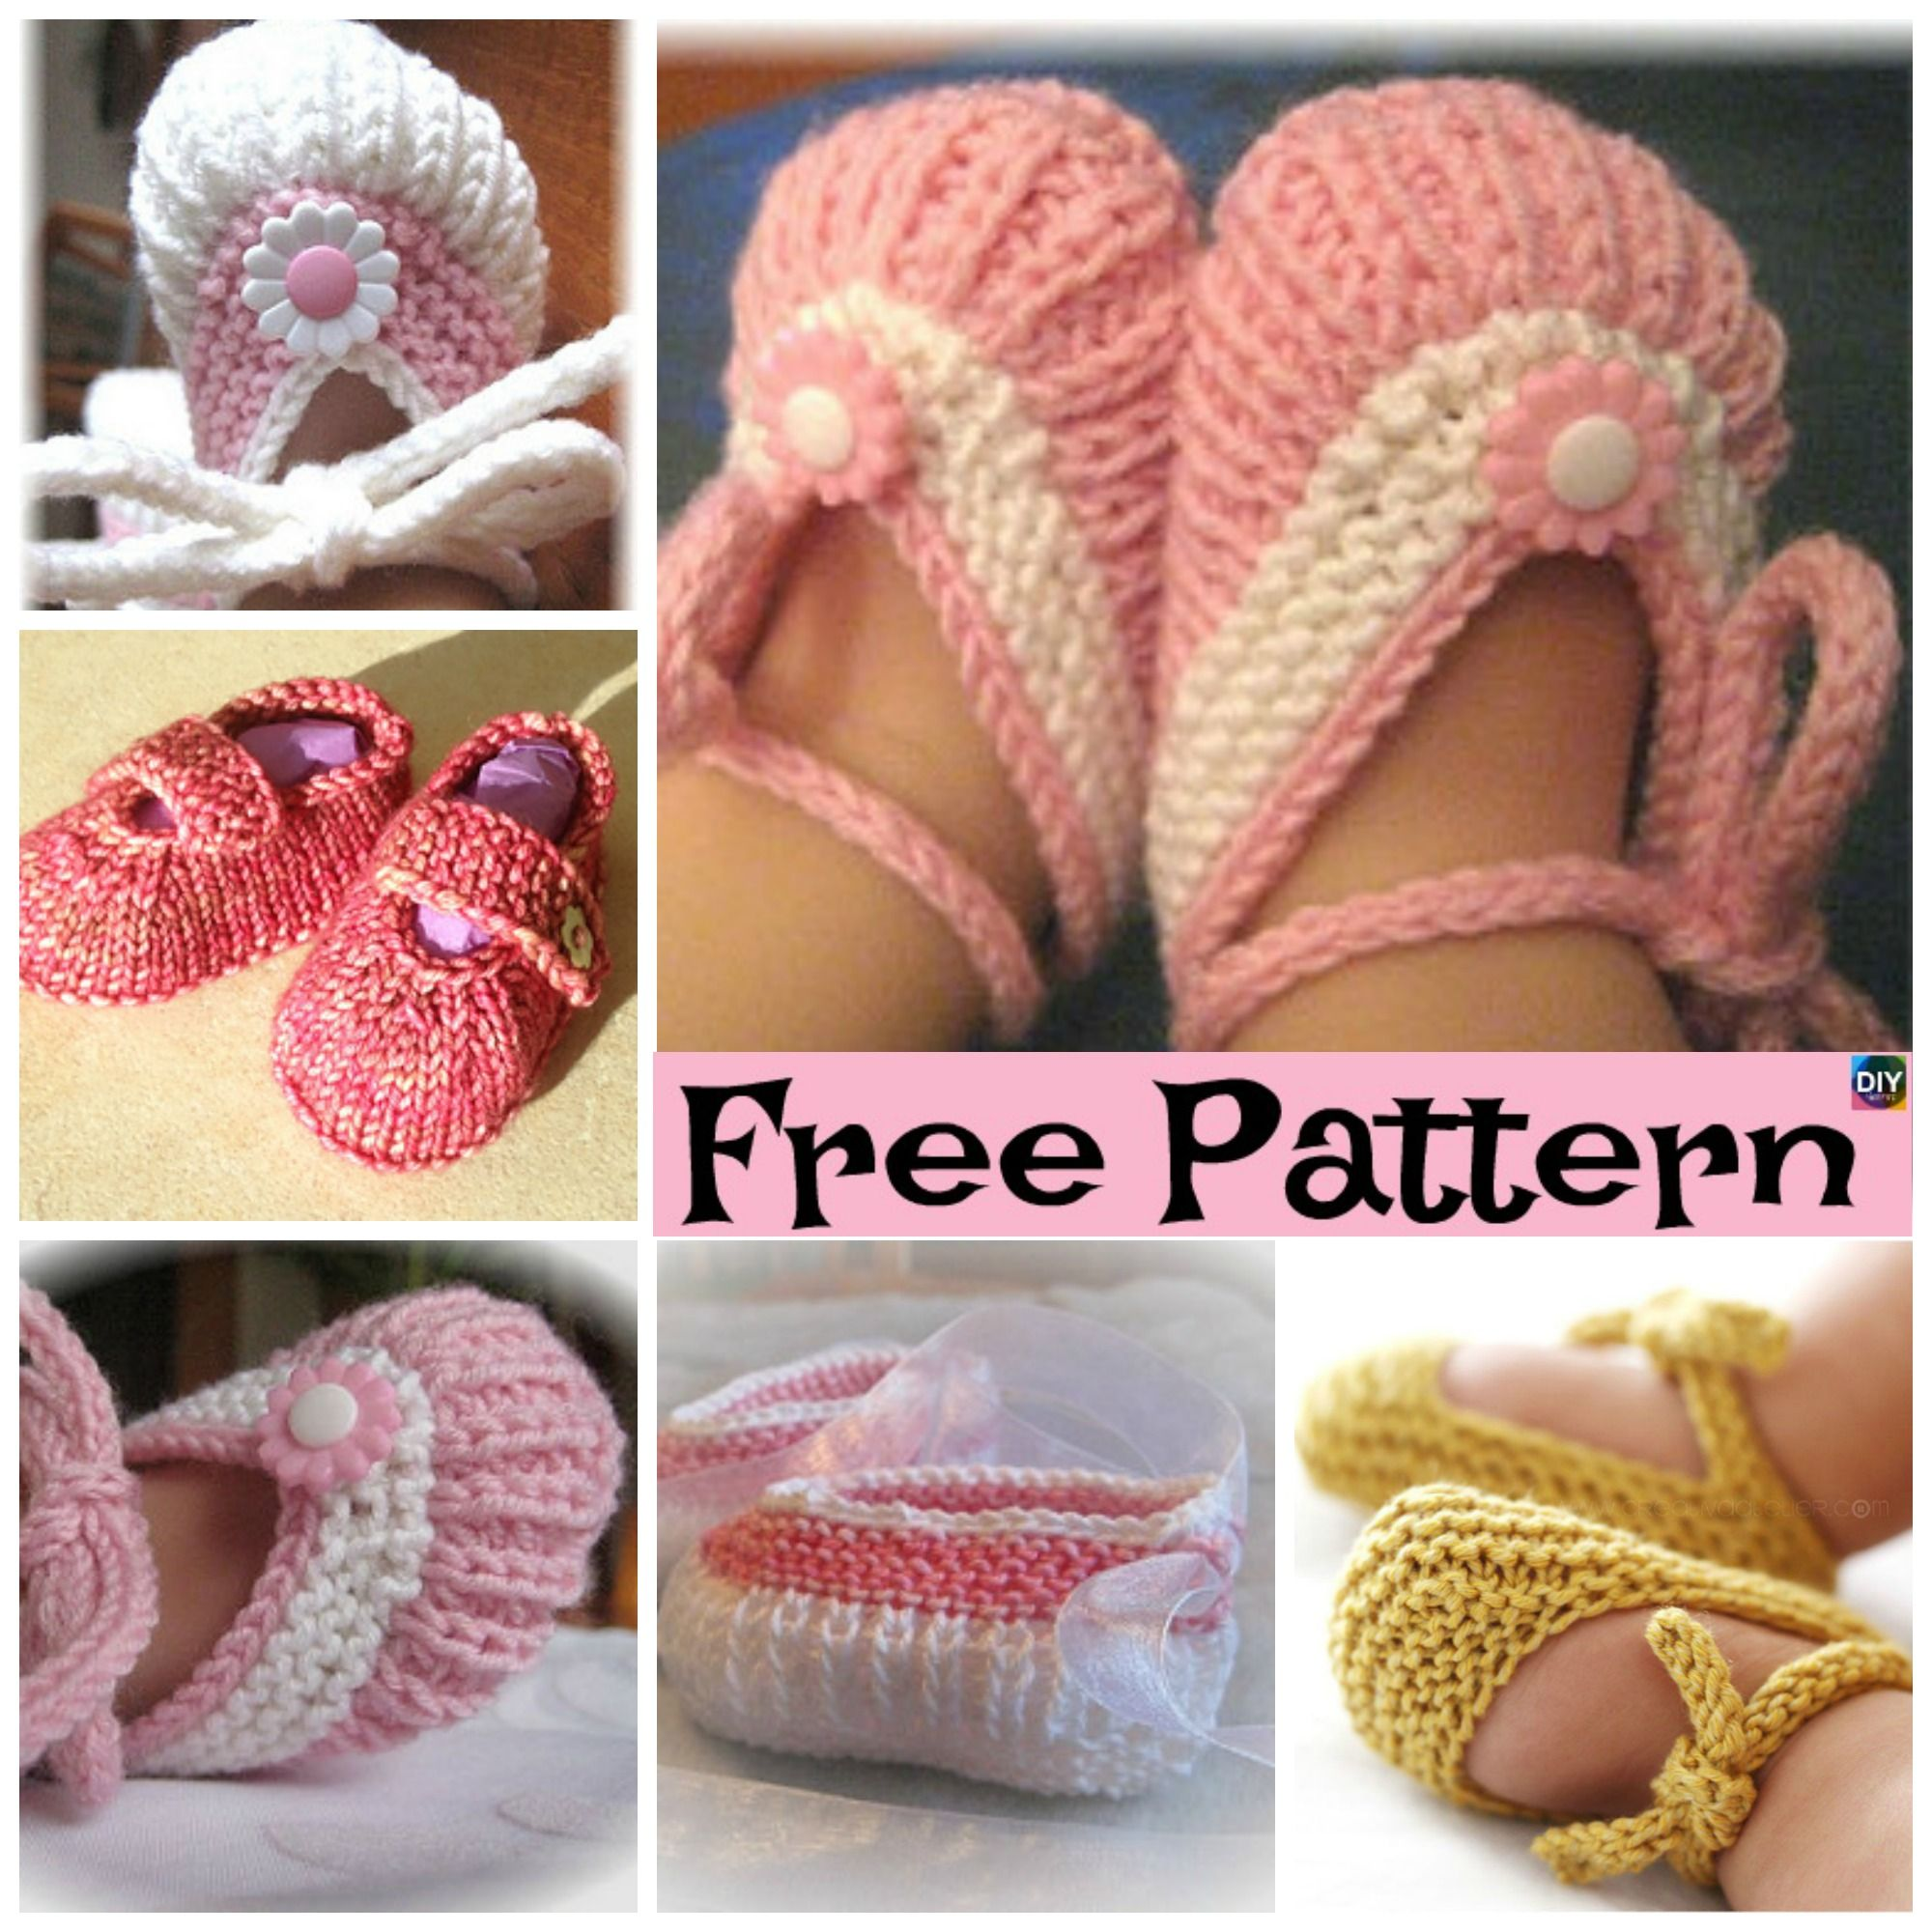 Adorable Knitted Baby Ballerina Booties Free Patterns Brei